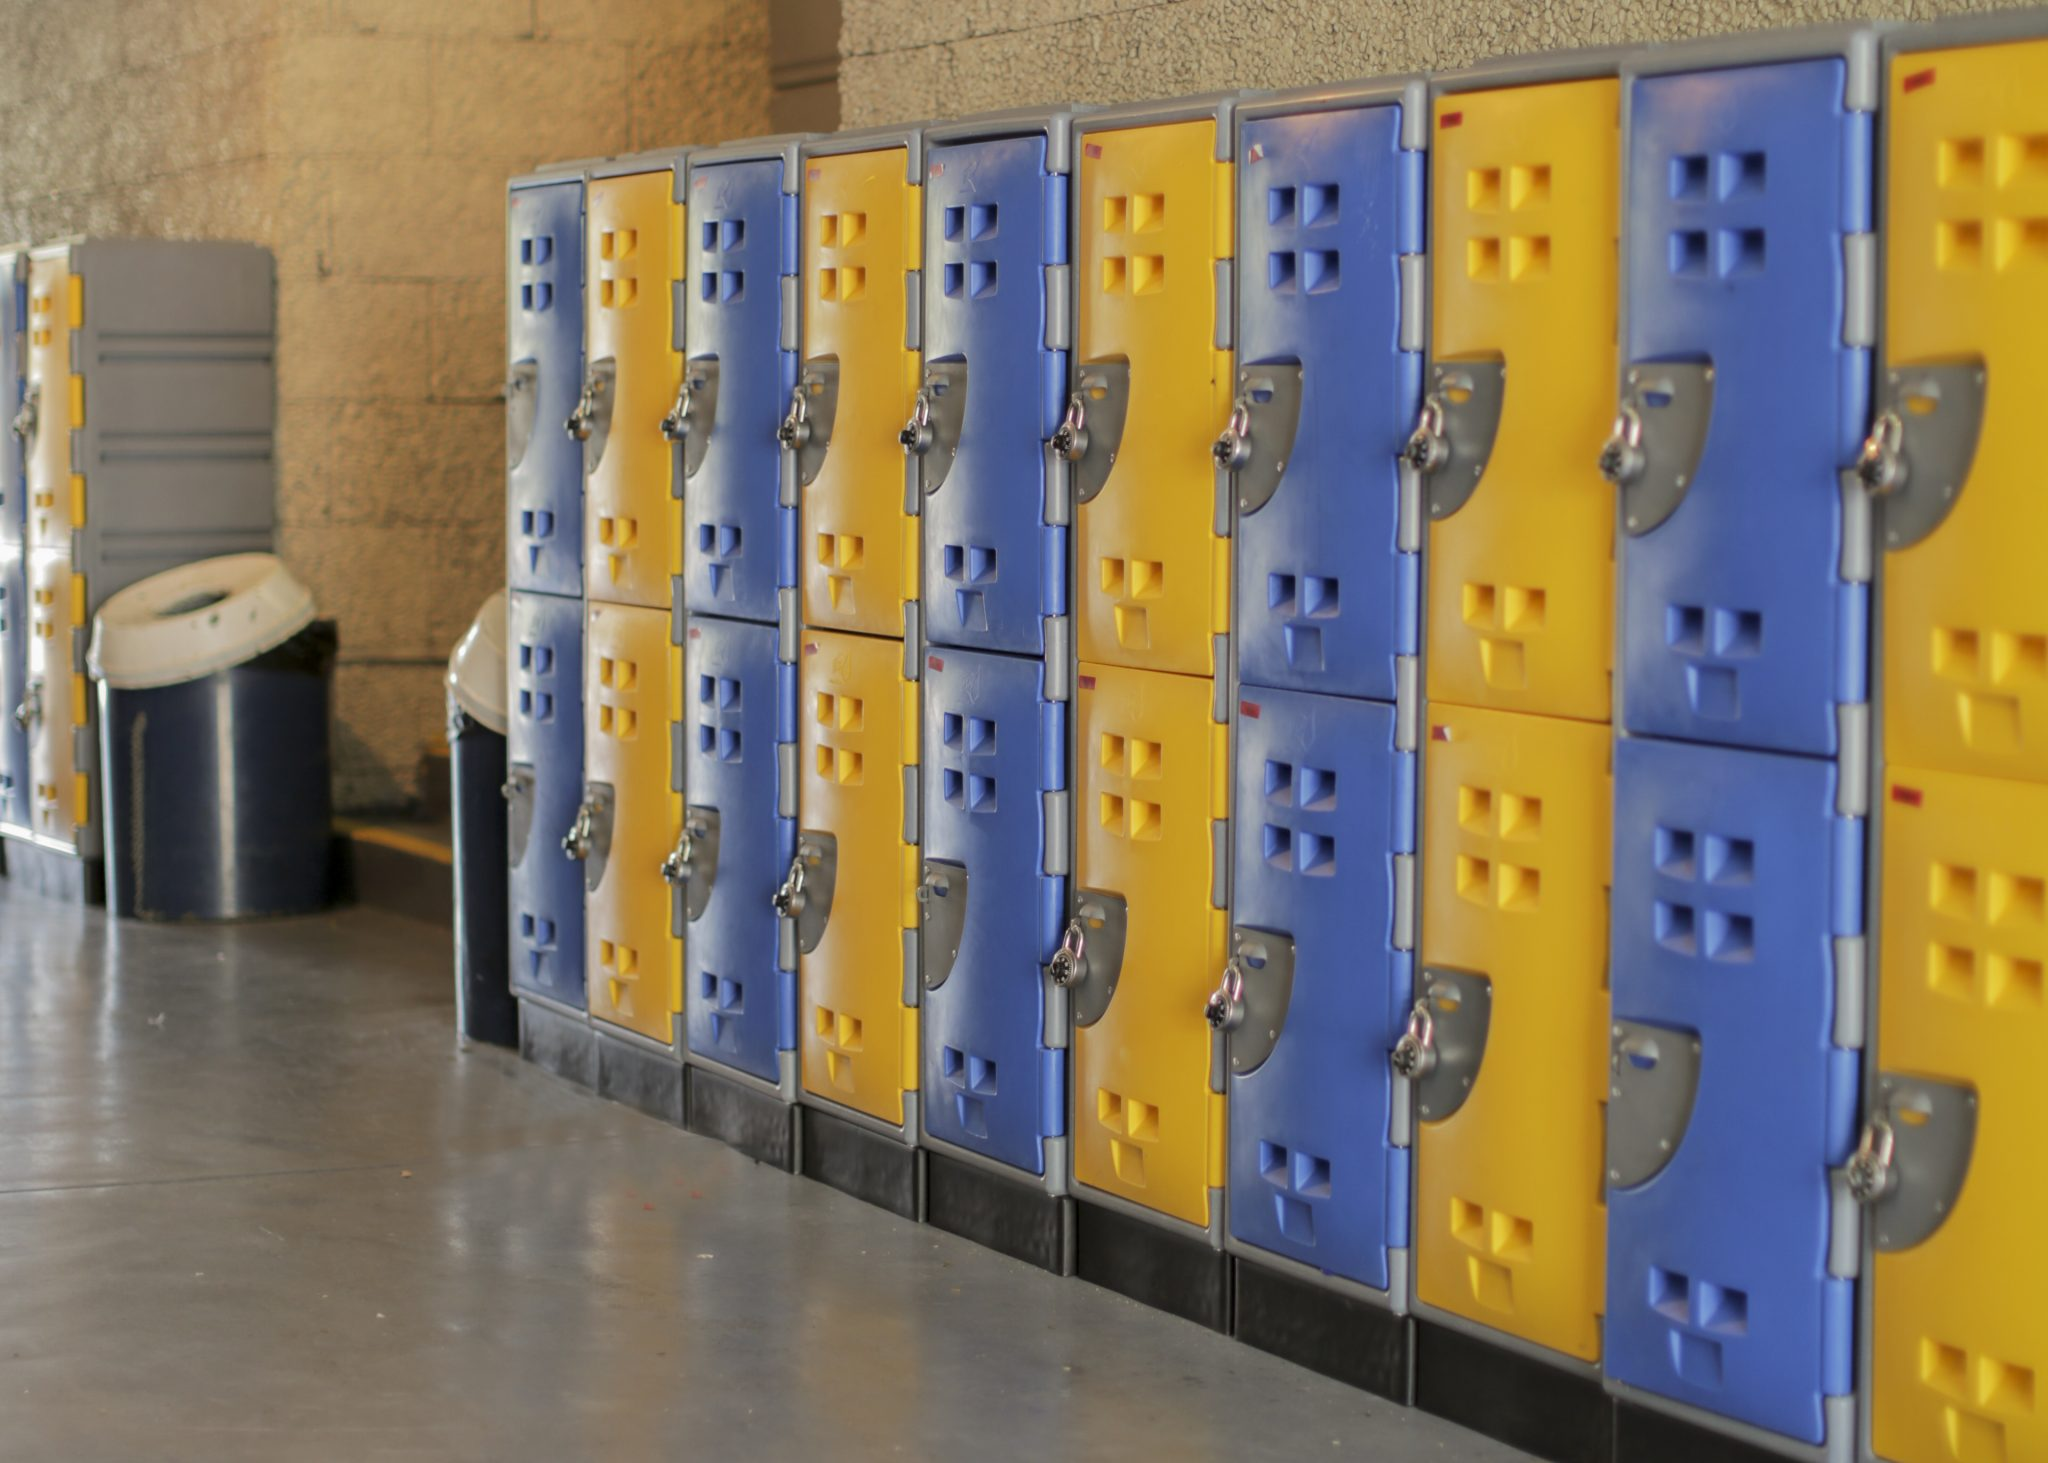 Flexilocker School Lockers Introduced To Westall College